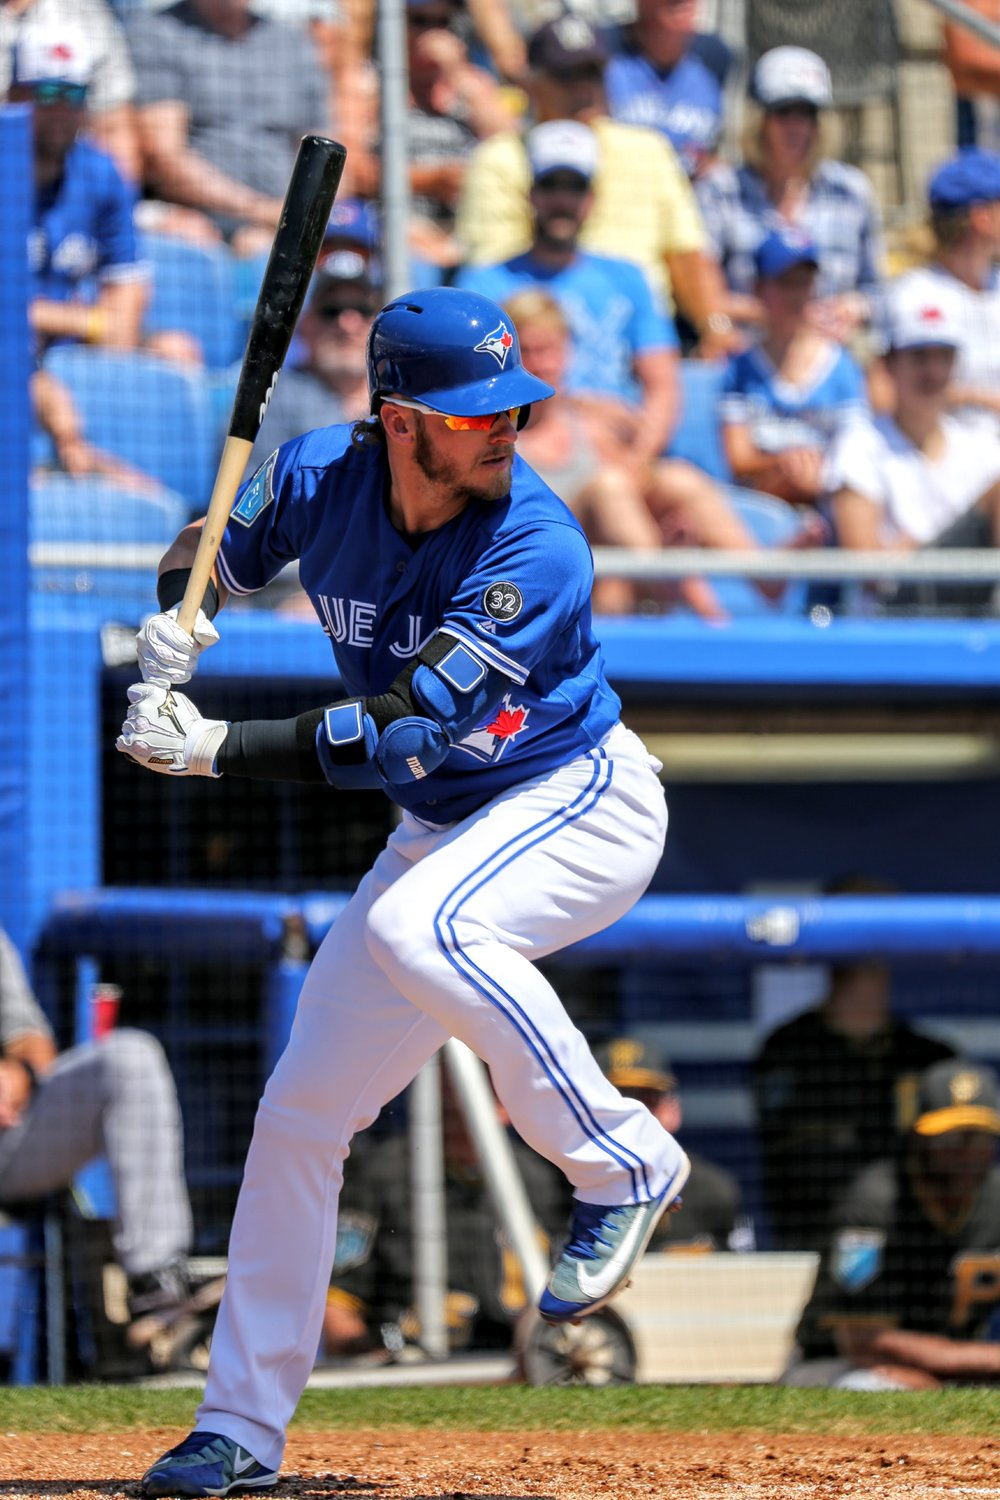 The Toronto Blue Jays have placed slugger Josh Donaldson on the 10-day disabled list with a right shoulder injury. Photo Credit: Amanda Fewer